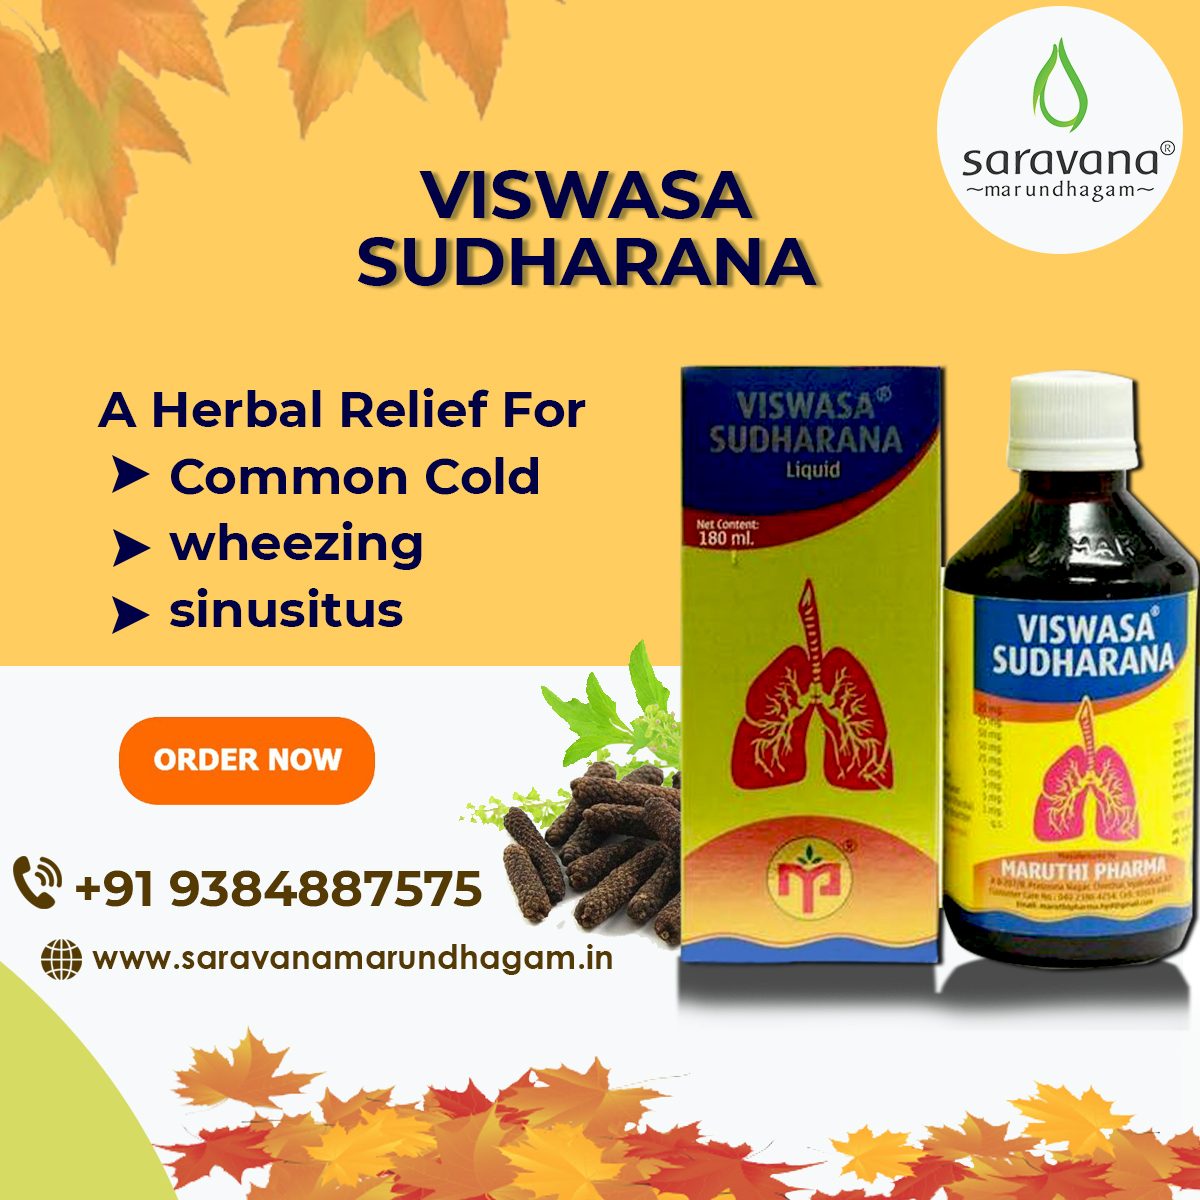 Suffering from Cough and Cold? Get Instant Relief from cough and cold with Viswasa Sudharana an Ayurvedic Health Supplement. For Orders Call - 9384887575 or Visit -  #viswasasudharana #mondaythoughts #cough #cold #WINTER #Herbal #ayurvedaday #chennai